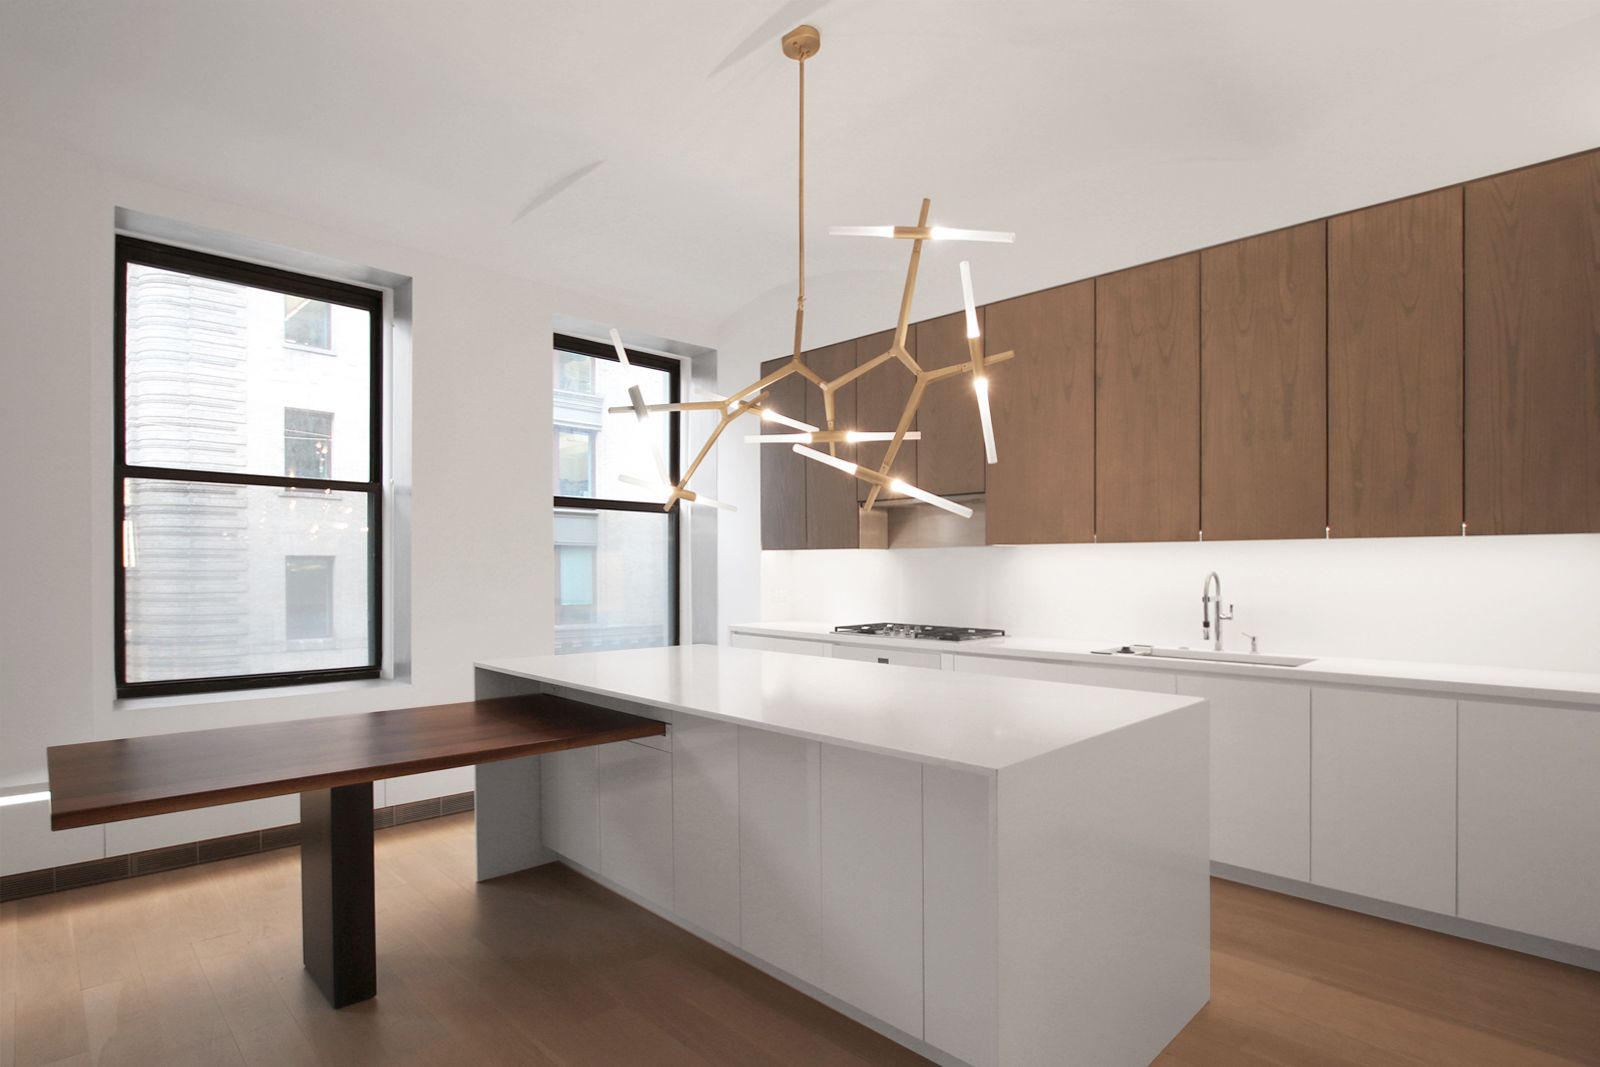 Res4 Modern Apartment Renovation Near Union Square Nyc Is An Exercise In Tiny Living The Cust Apartment Architecture Apartment Renovation Clean Kitchen Design